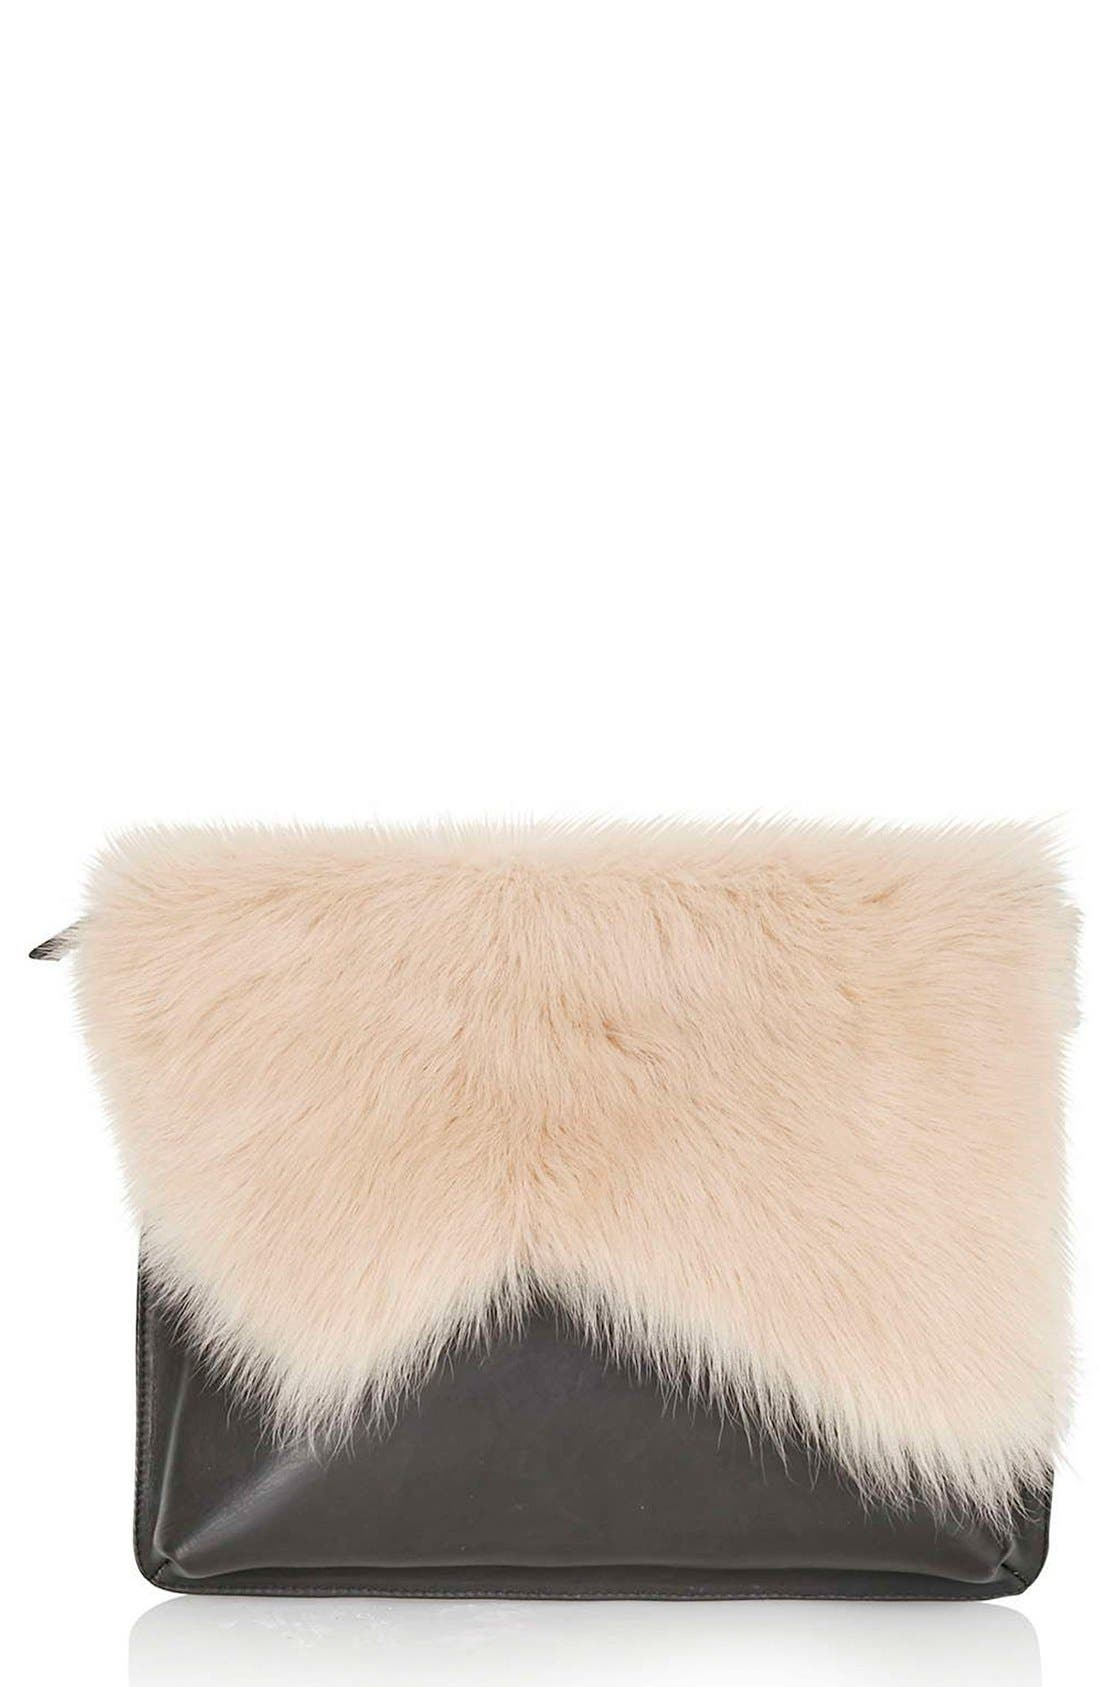 Alternate Image 1 Selected - Topshop Genuine Shearling & Leather Clutch